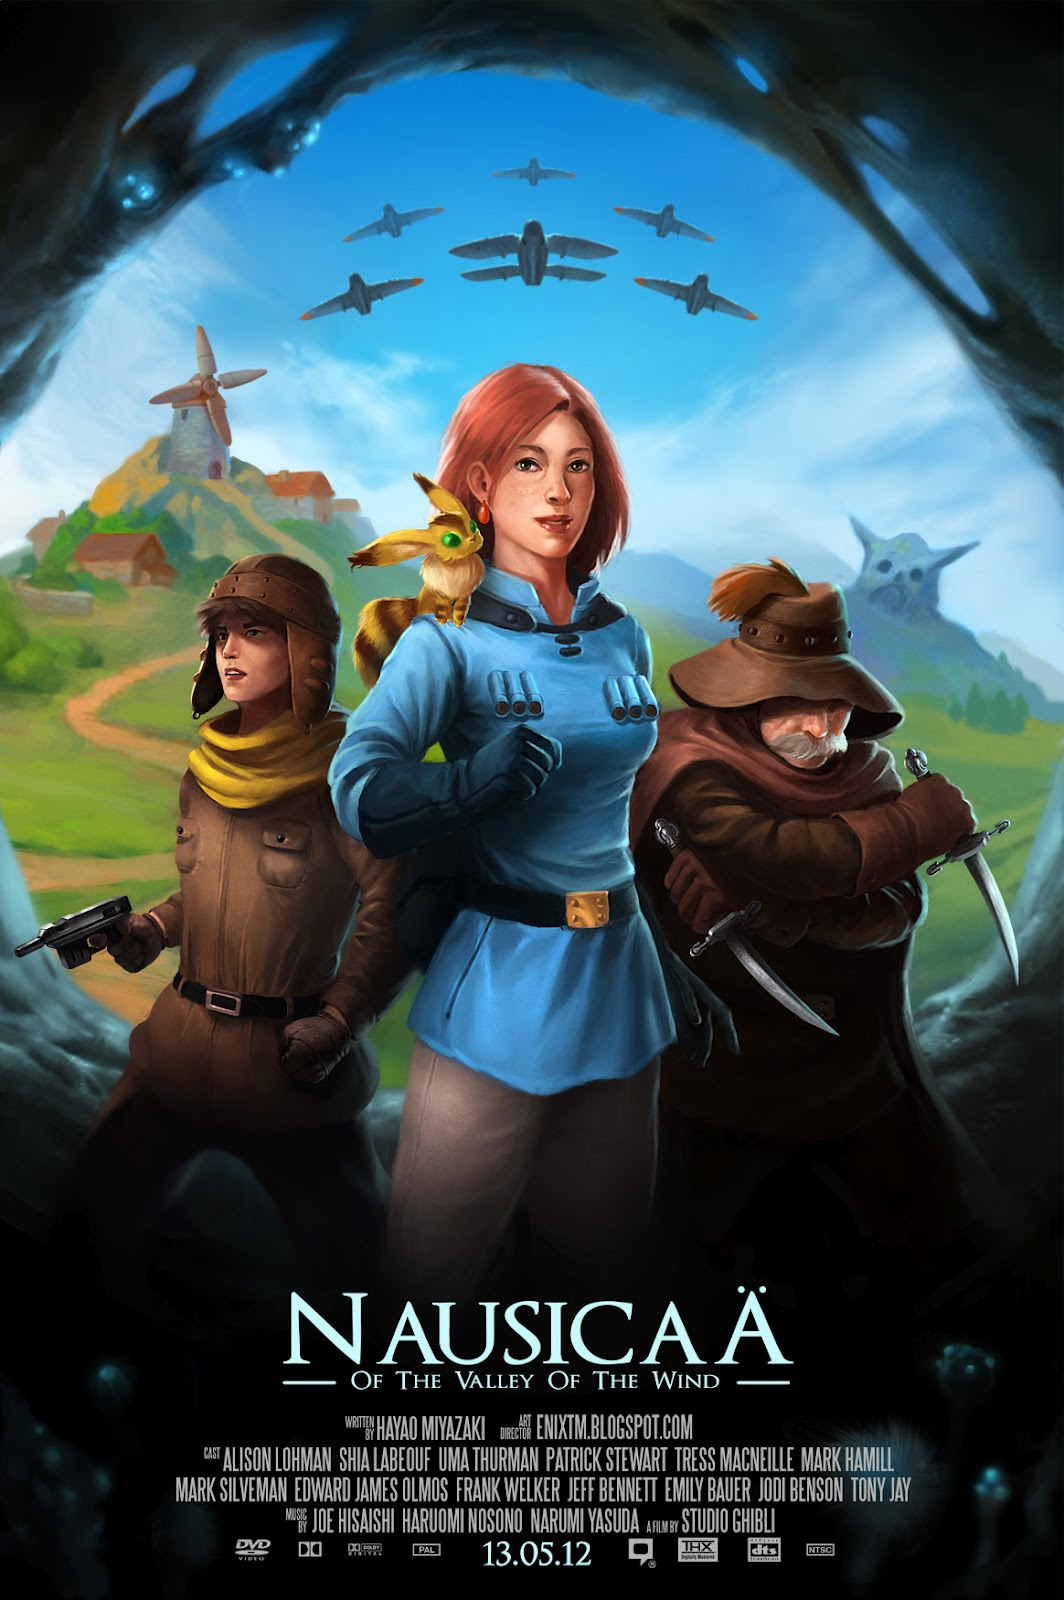 [Image: nausicaa+poster+POST+smaller.jpg]